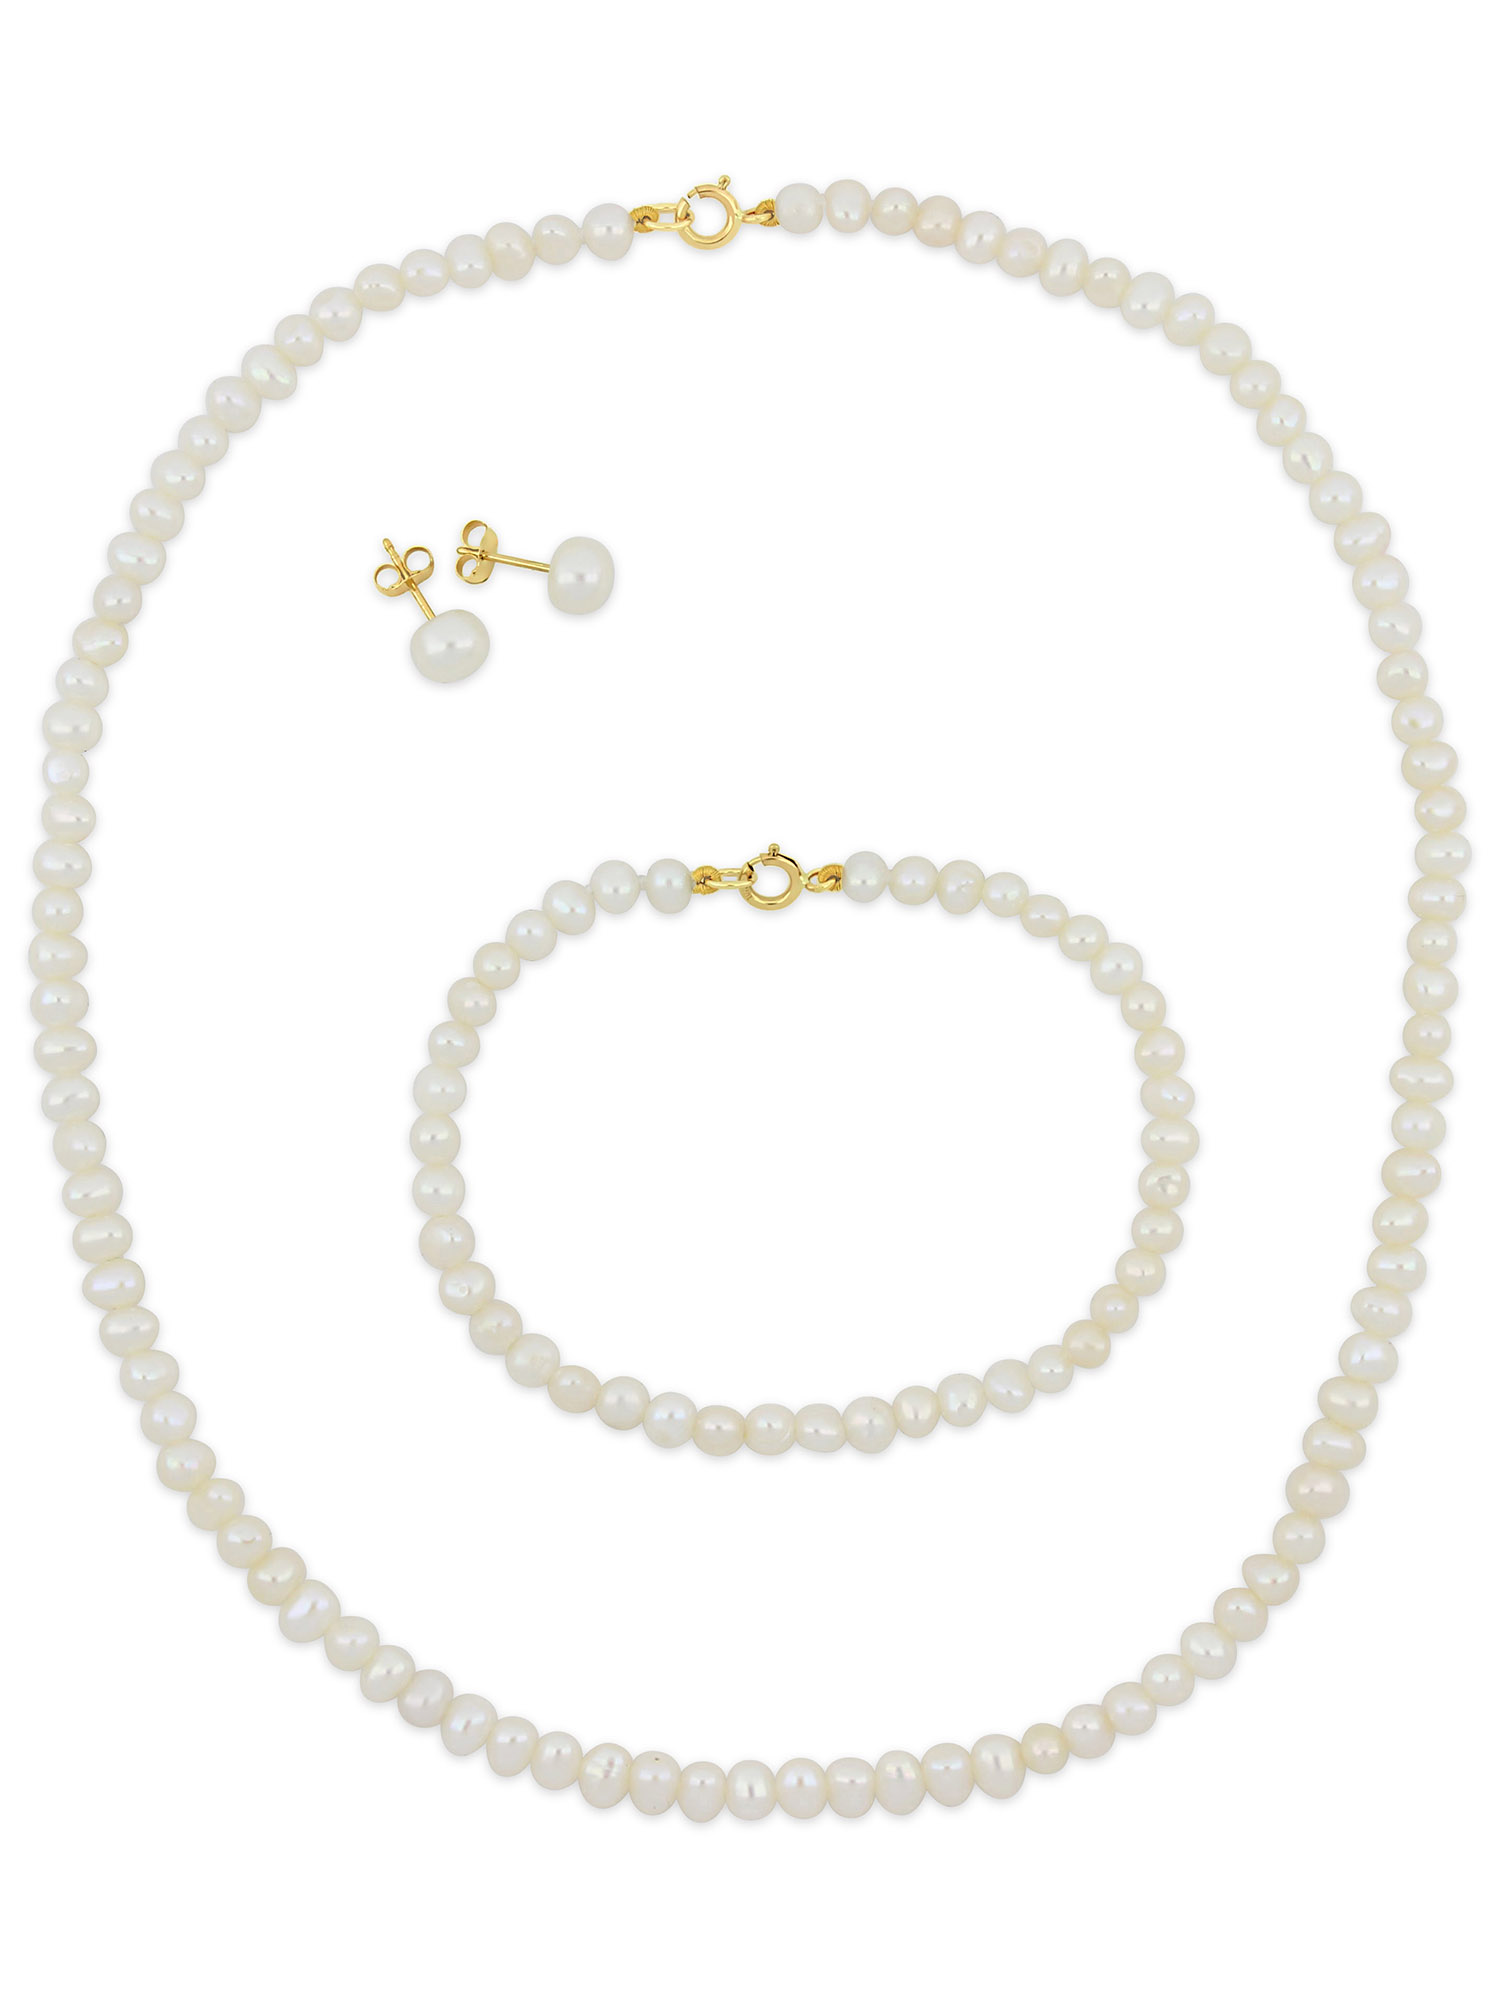 Freshwater Cultured Pearl 10k Yellow Gold Children's 3-Piece Necklace, Bracelet and Earrings Set